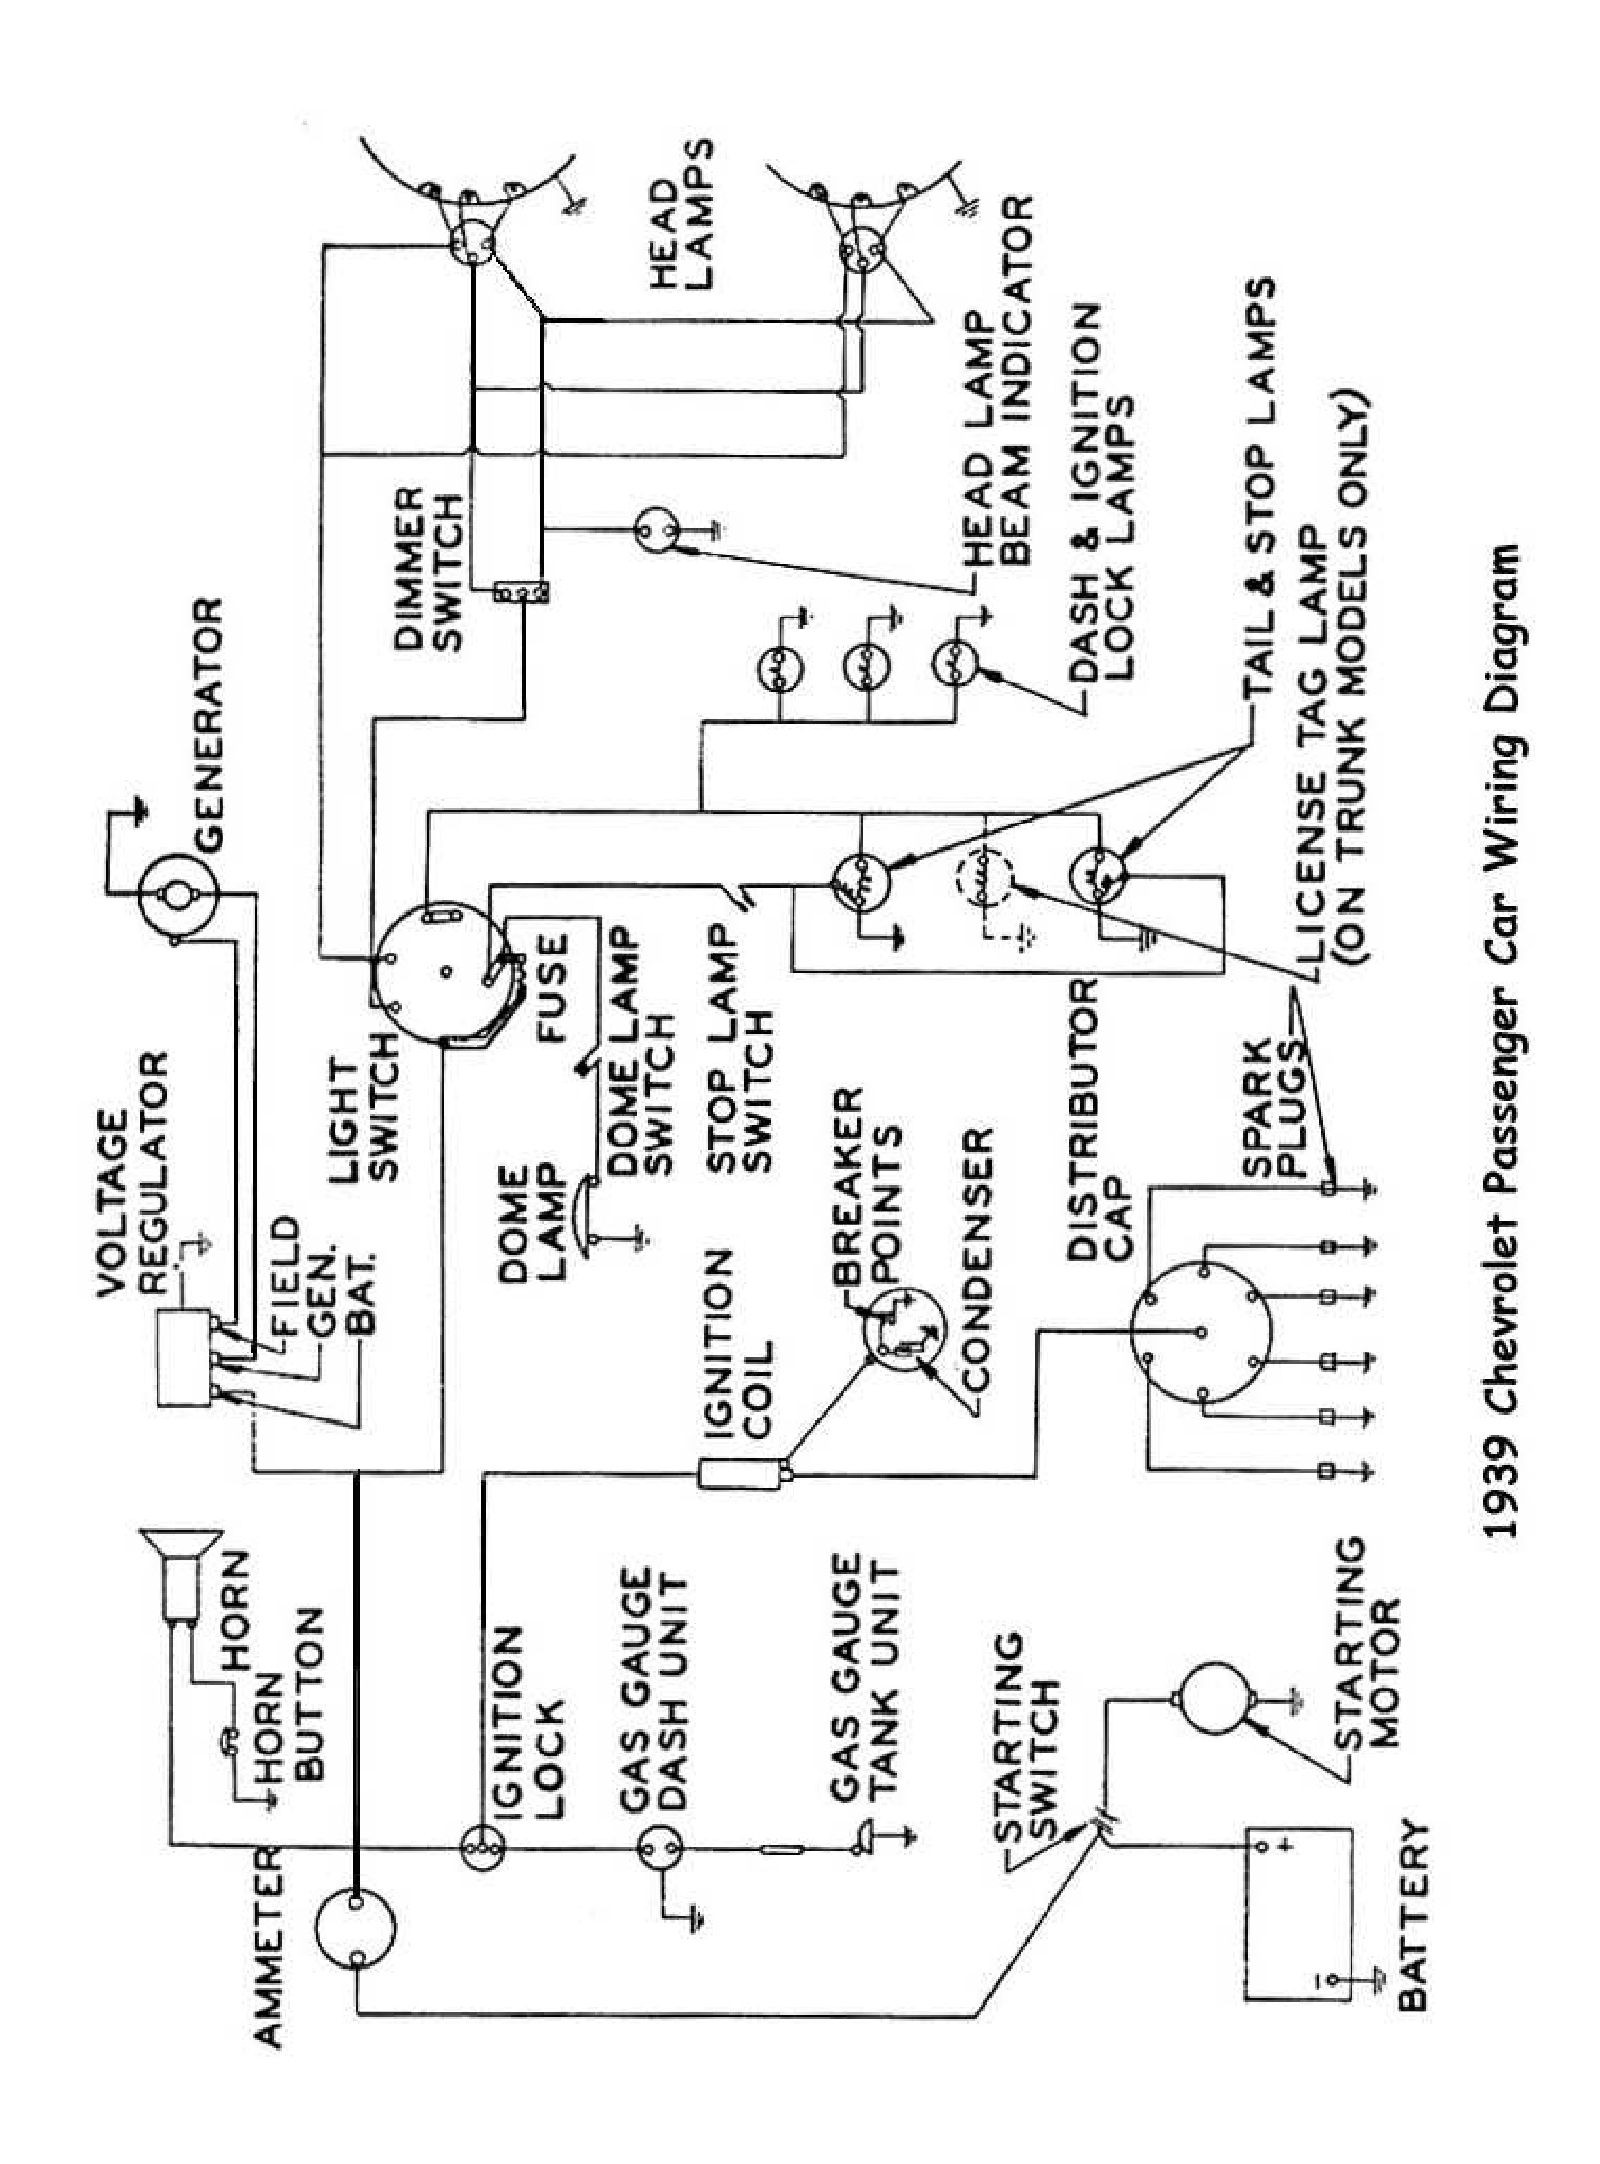 Race Car Alternator Wiring Diagram I Have A 2002 Chevy